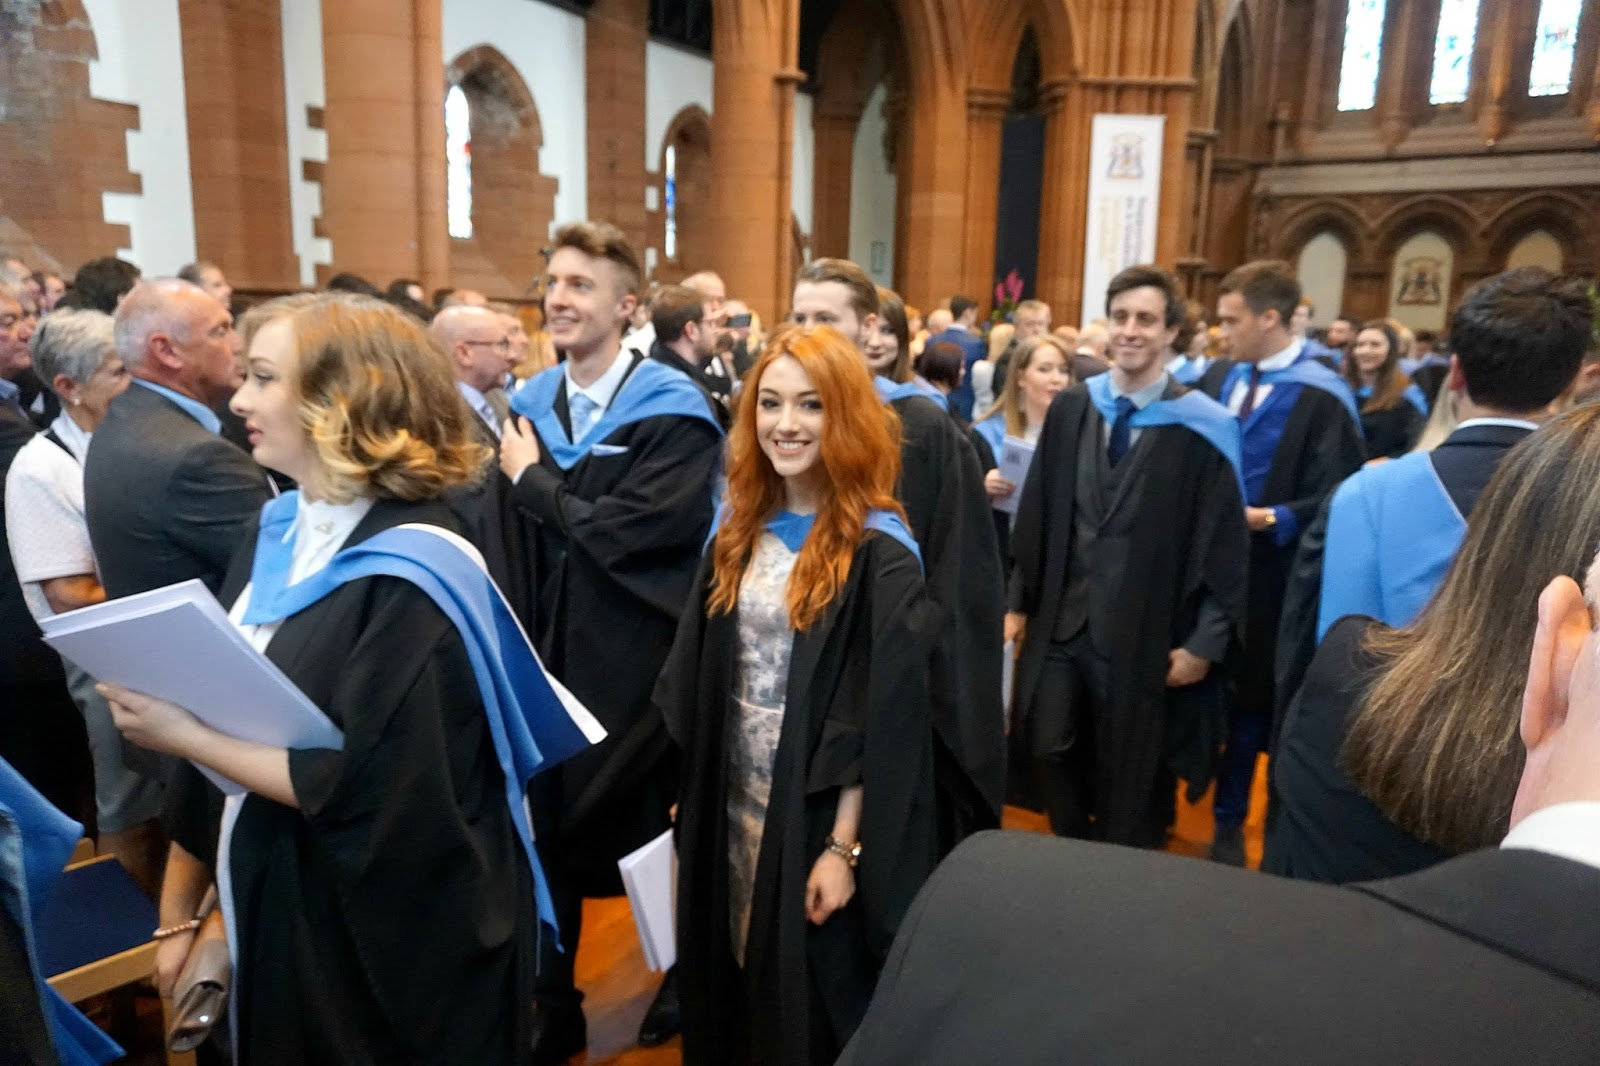 Strathclyde University Graduation 2016